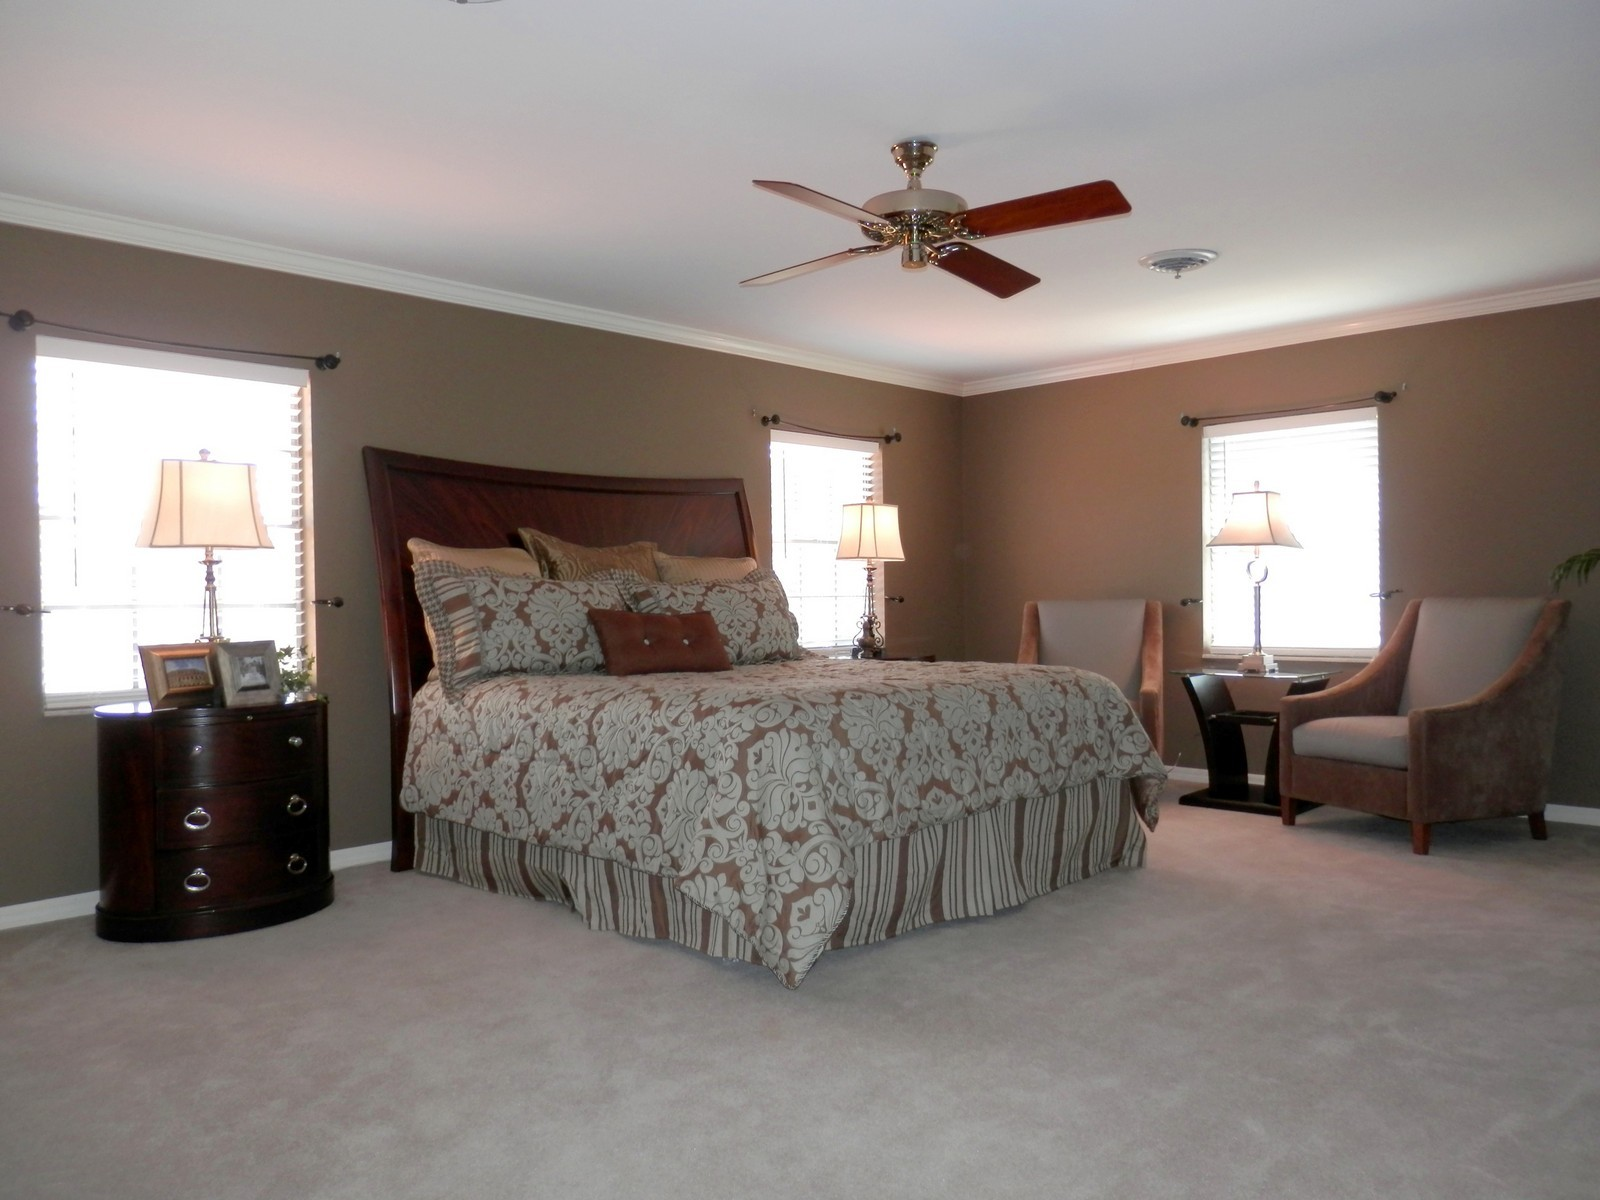 Real Estate Photography - 4920 Lyford Cay Road, Tampa, FL, 33629 - Master Bedroom